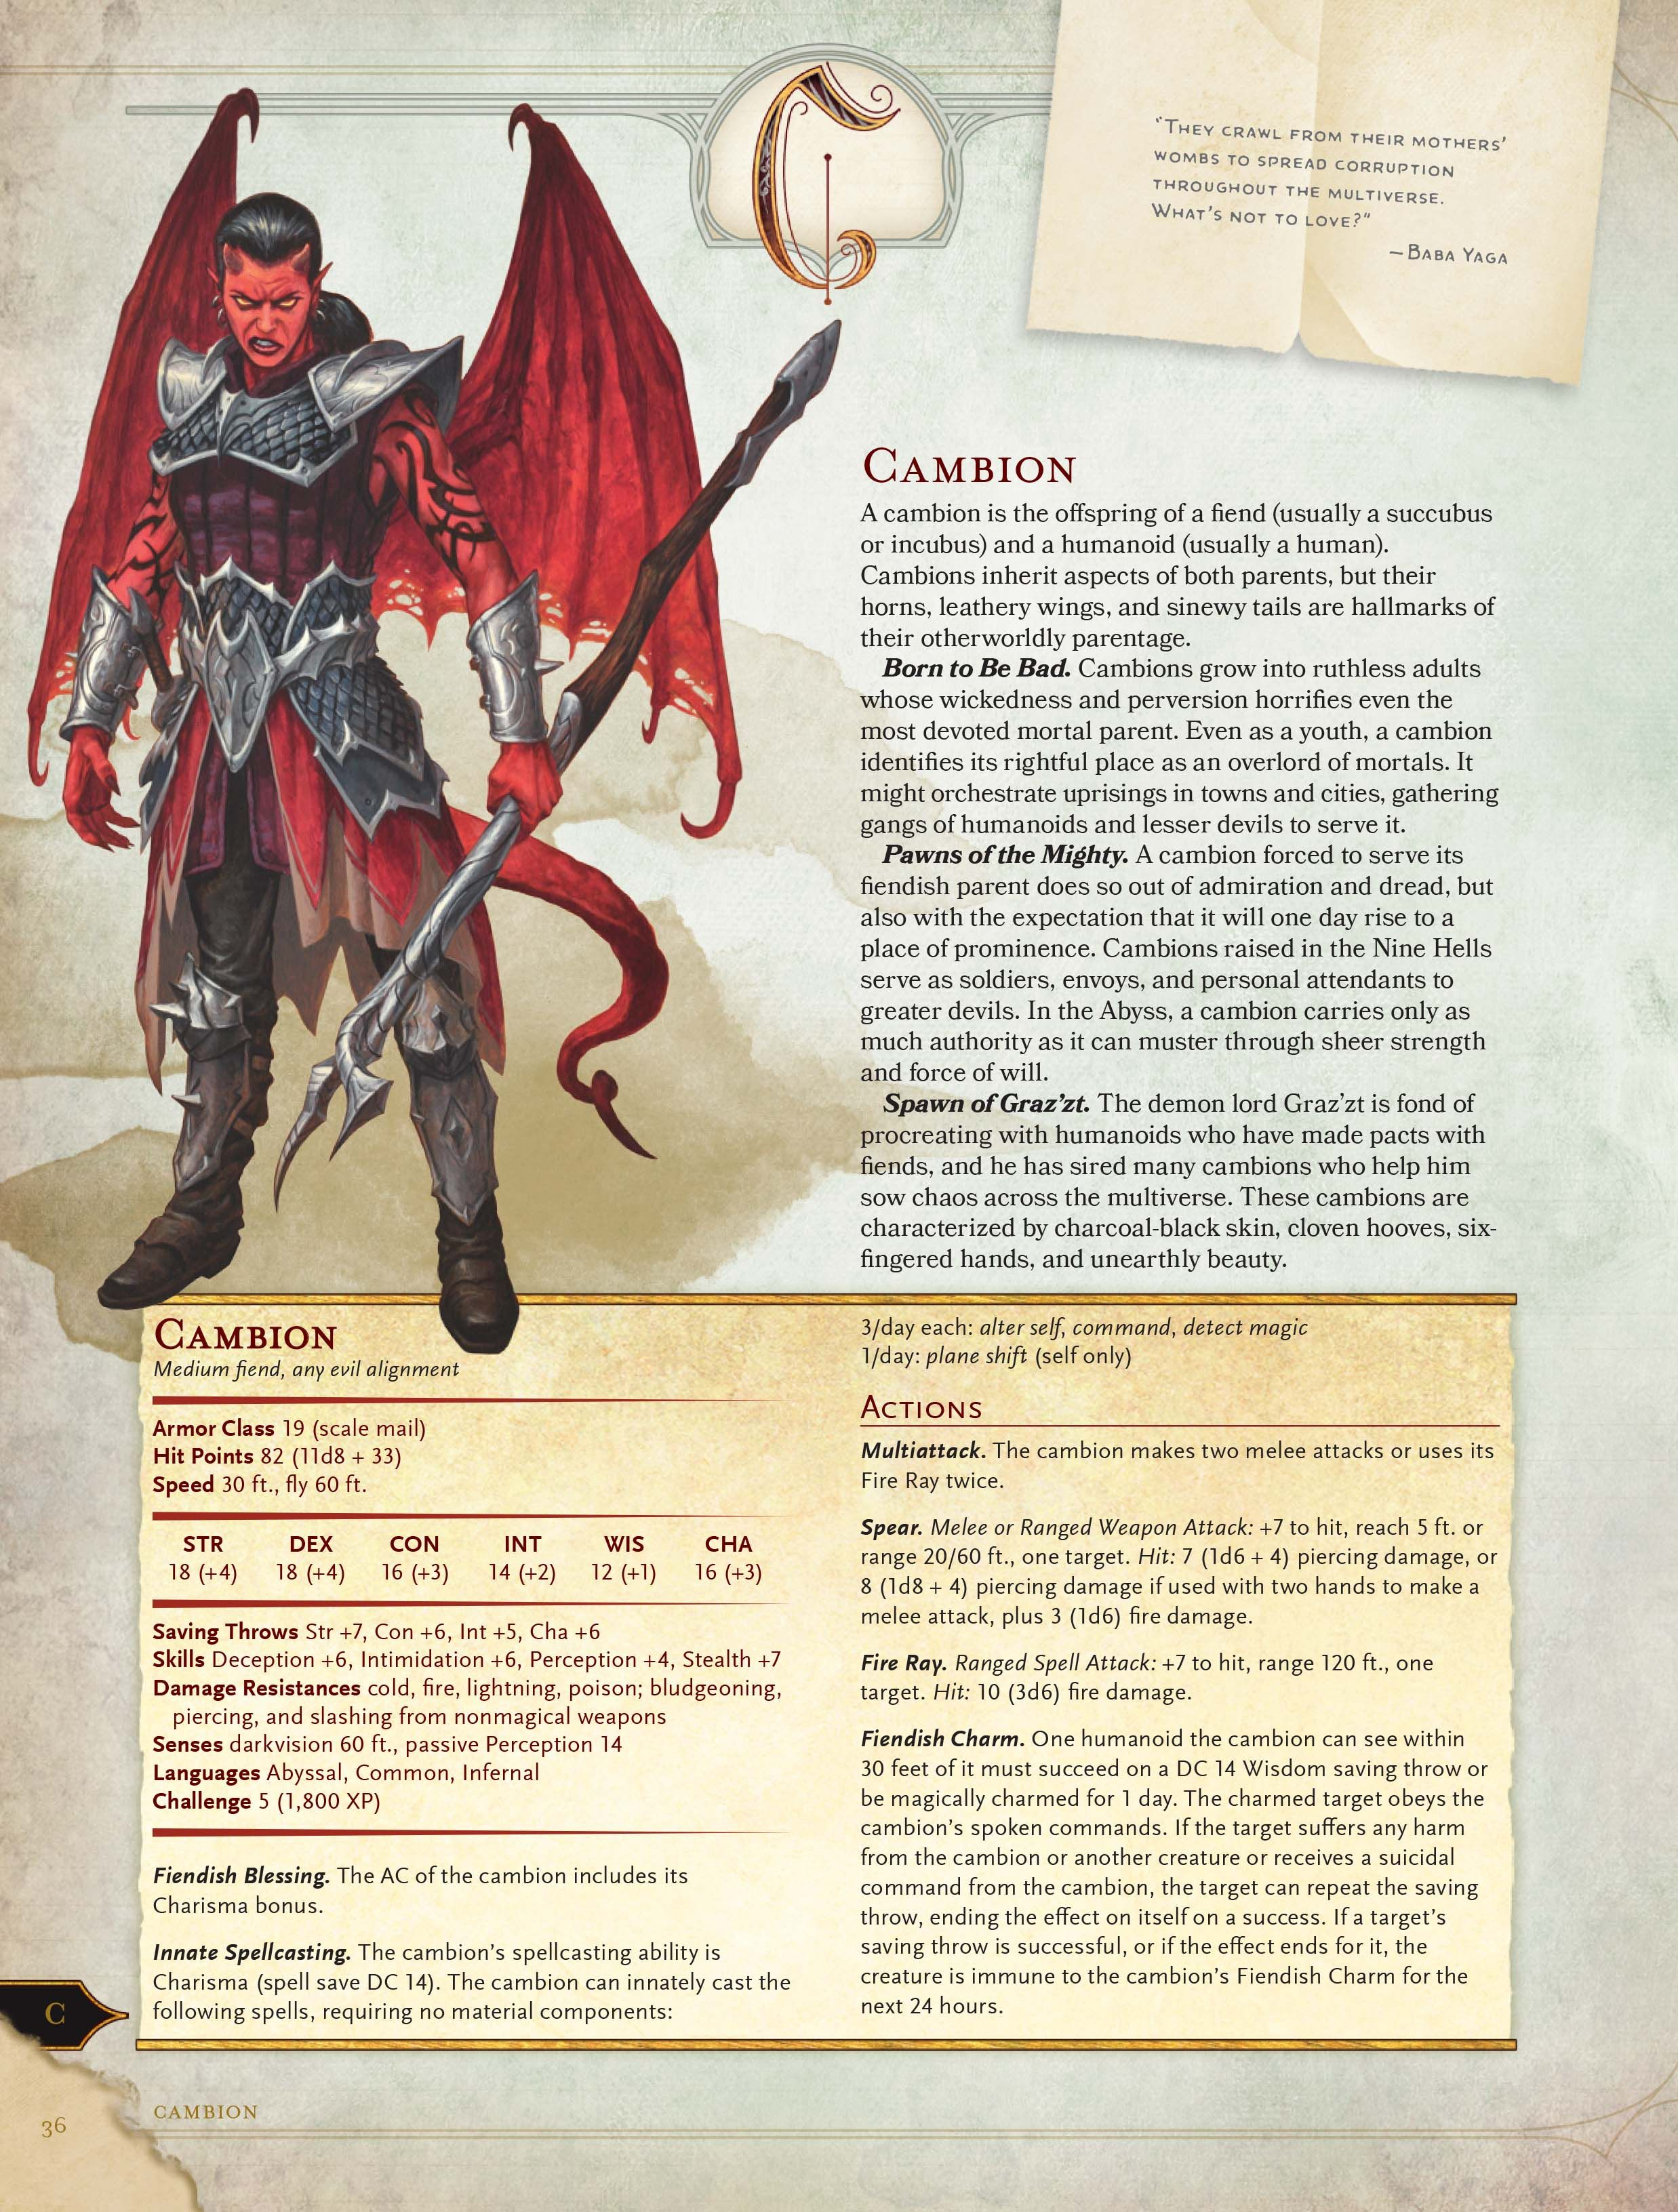 D&D 5th Edition Monster Manual Review for Dungeons & Dragons